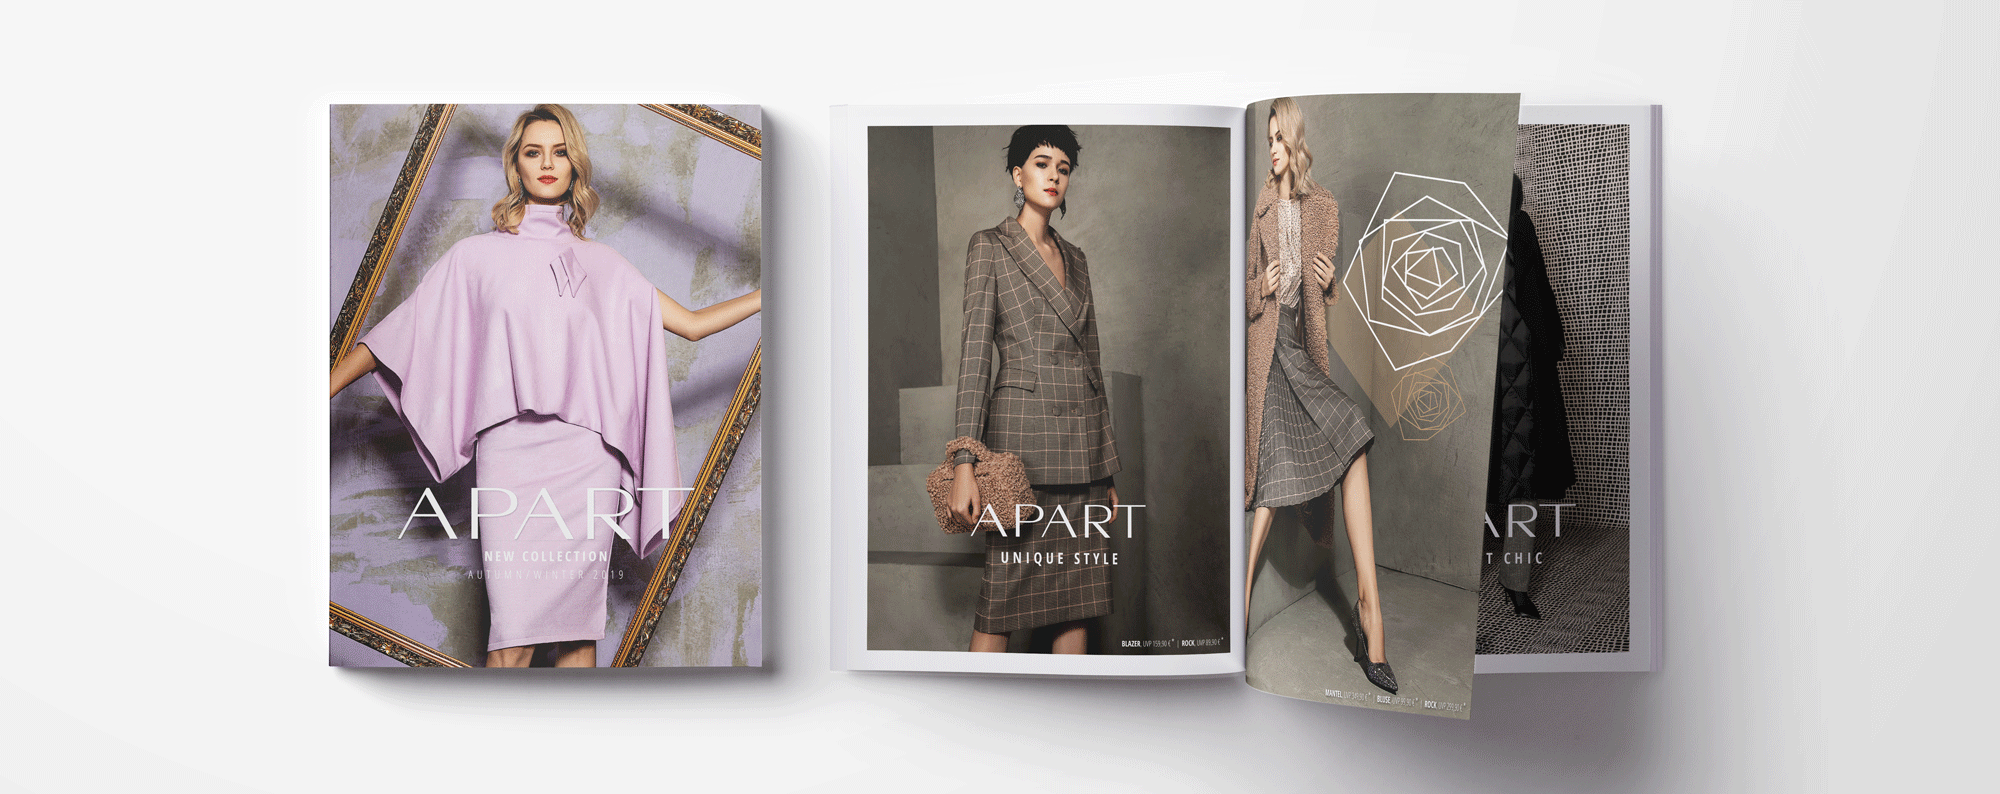 Apart Katalog Online B2b Contact Apart Fashion